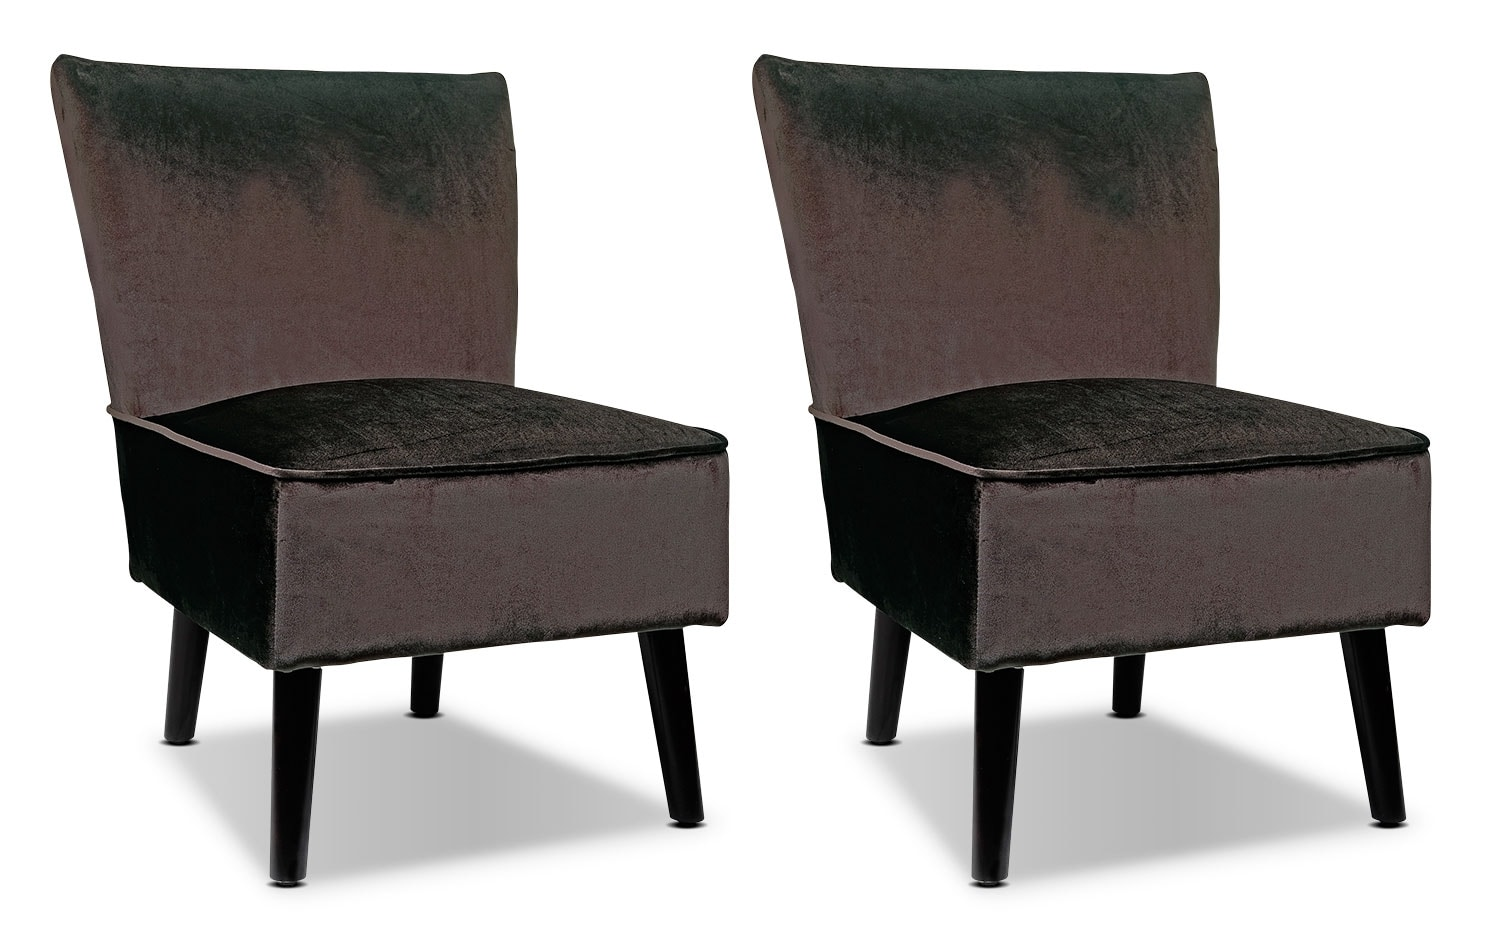 Living Room Furniture - LAD Velvet Fabric Accent Chairs, Set of 2 – Deep Brown